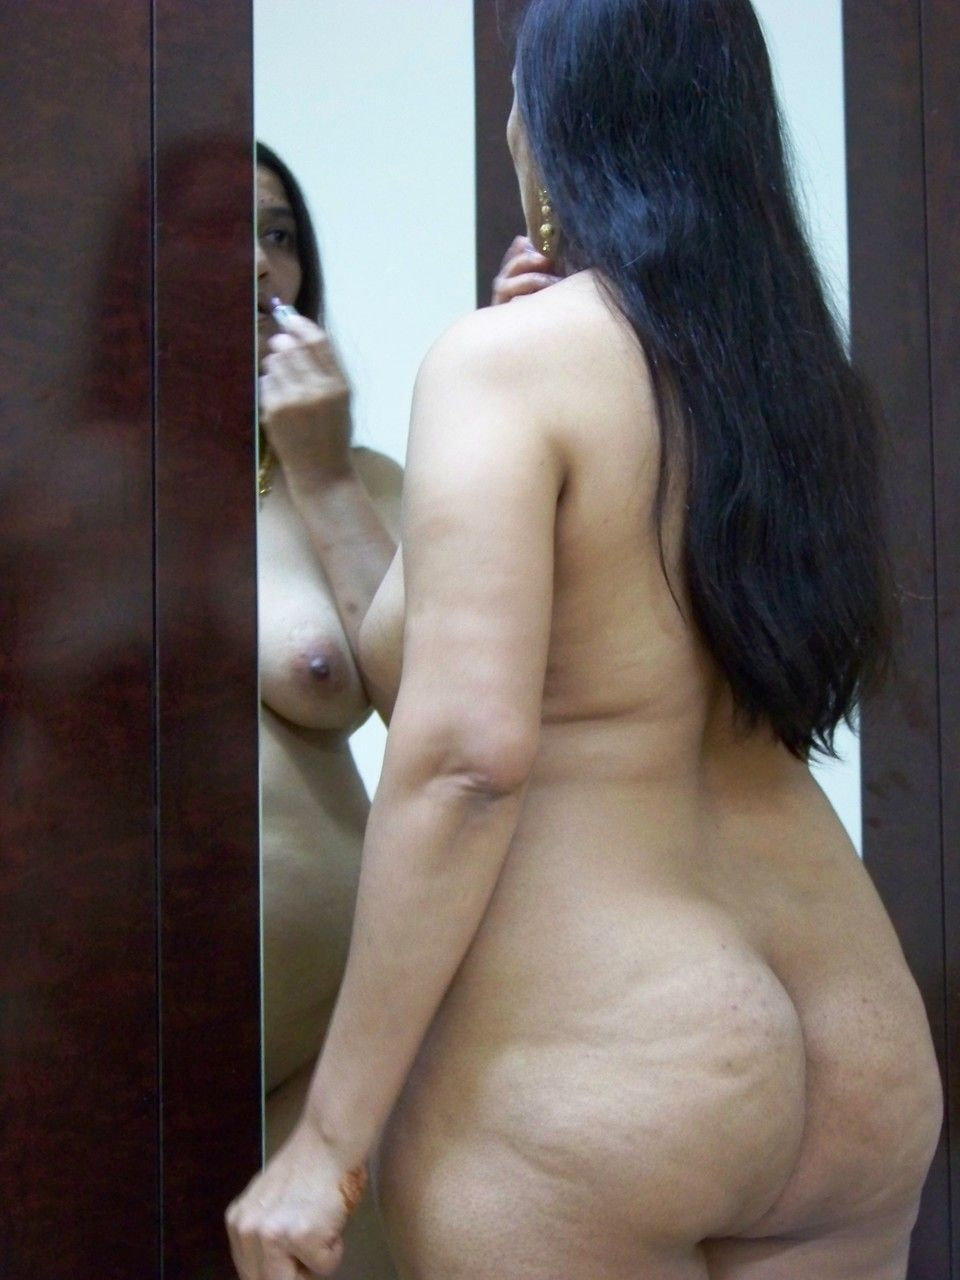 desi-girl-back-nude-stories-porn